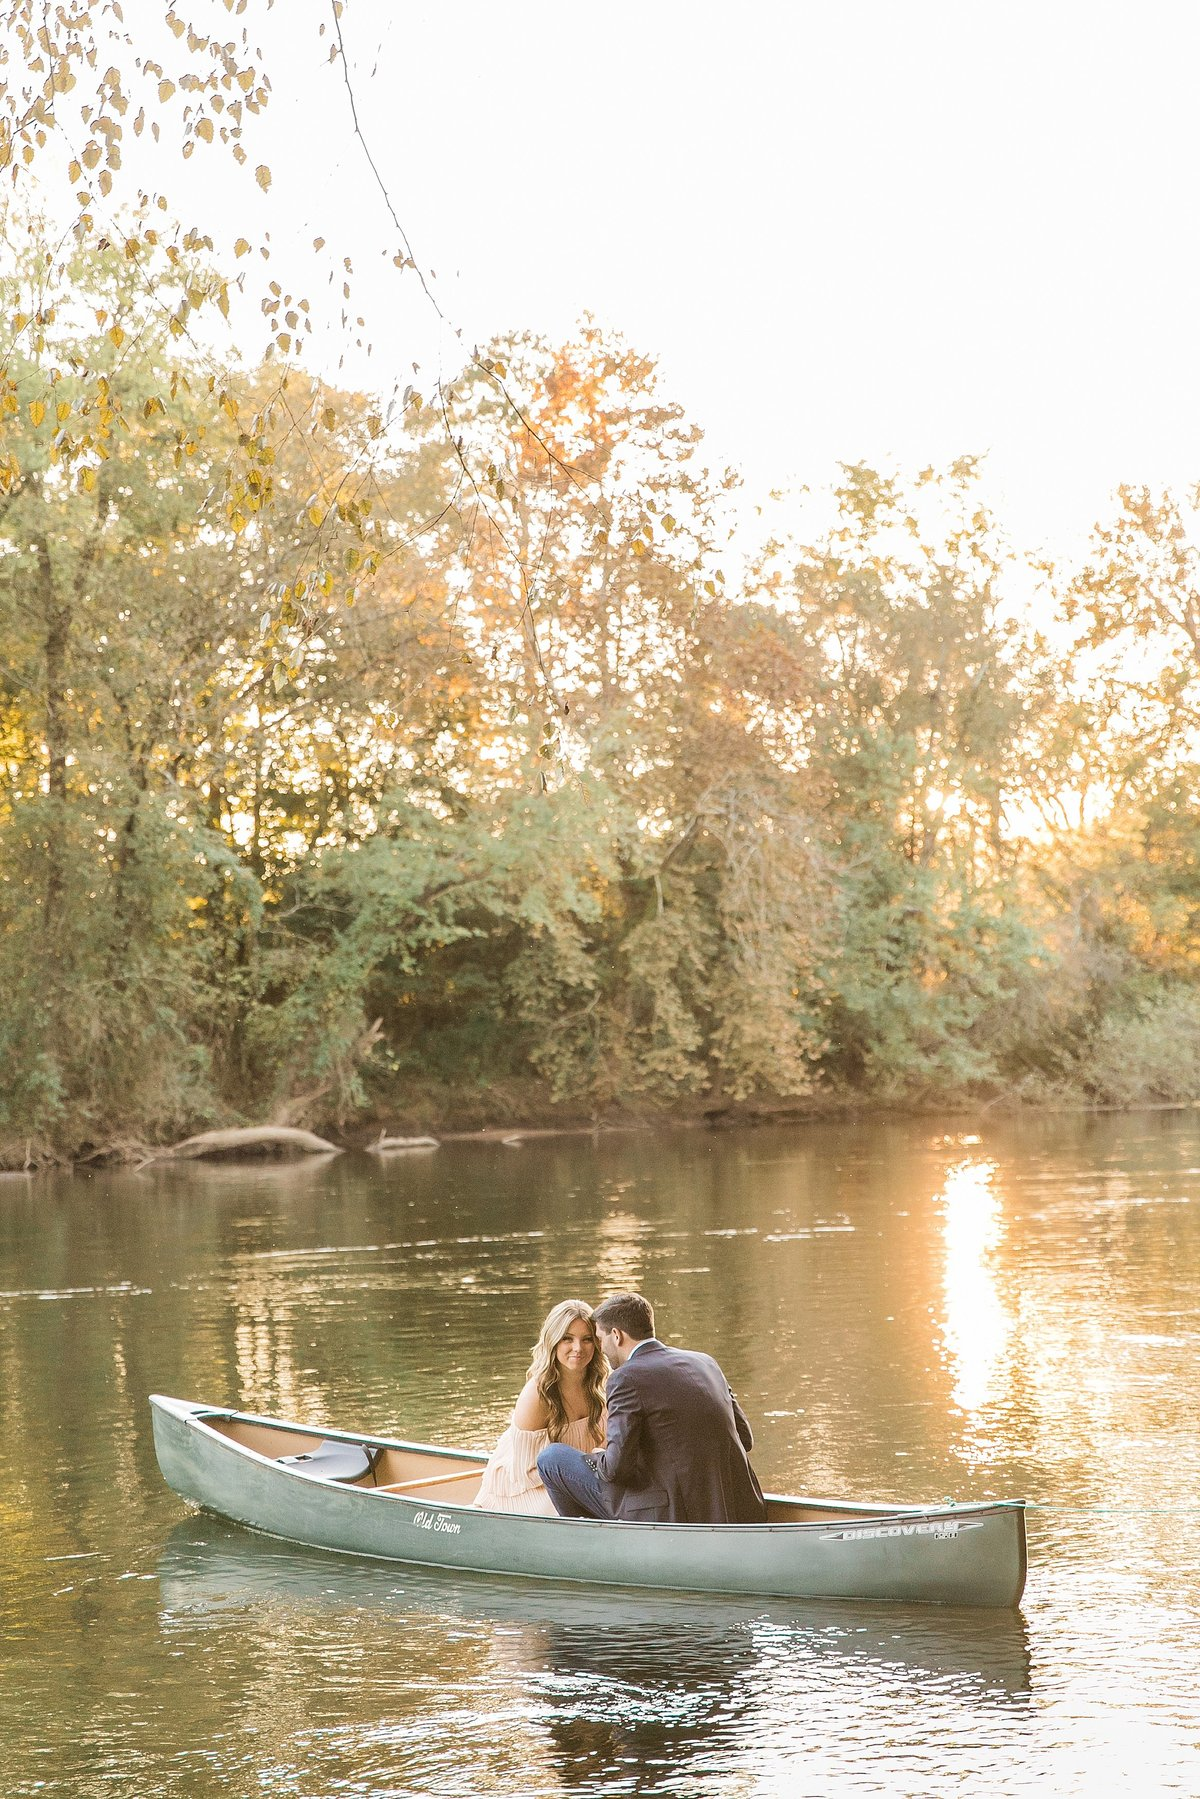 couple-lake-canoe-sunlight